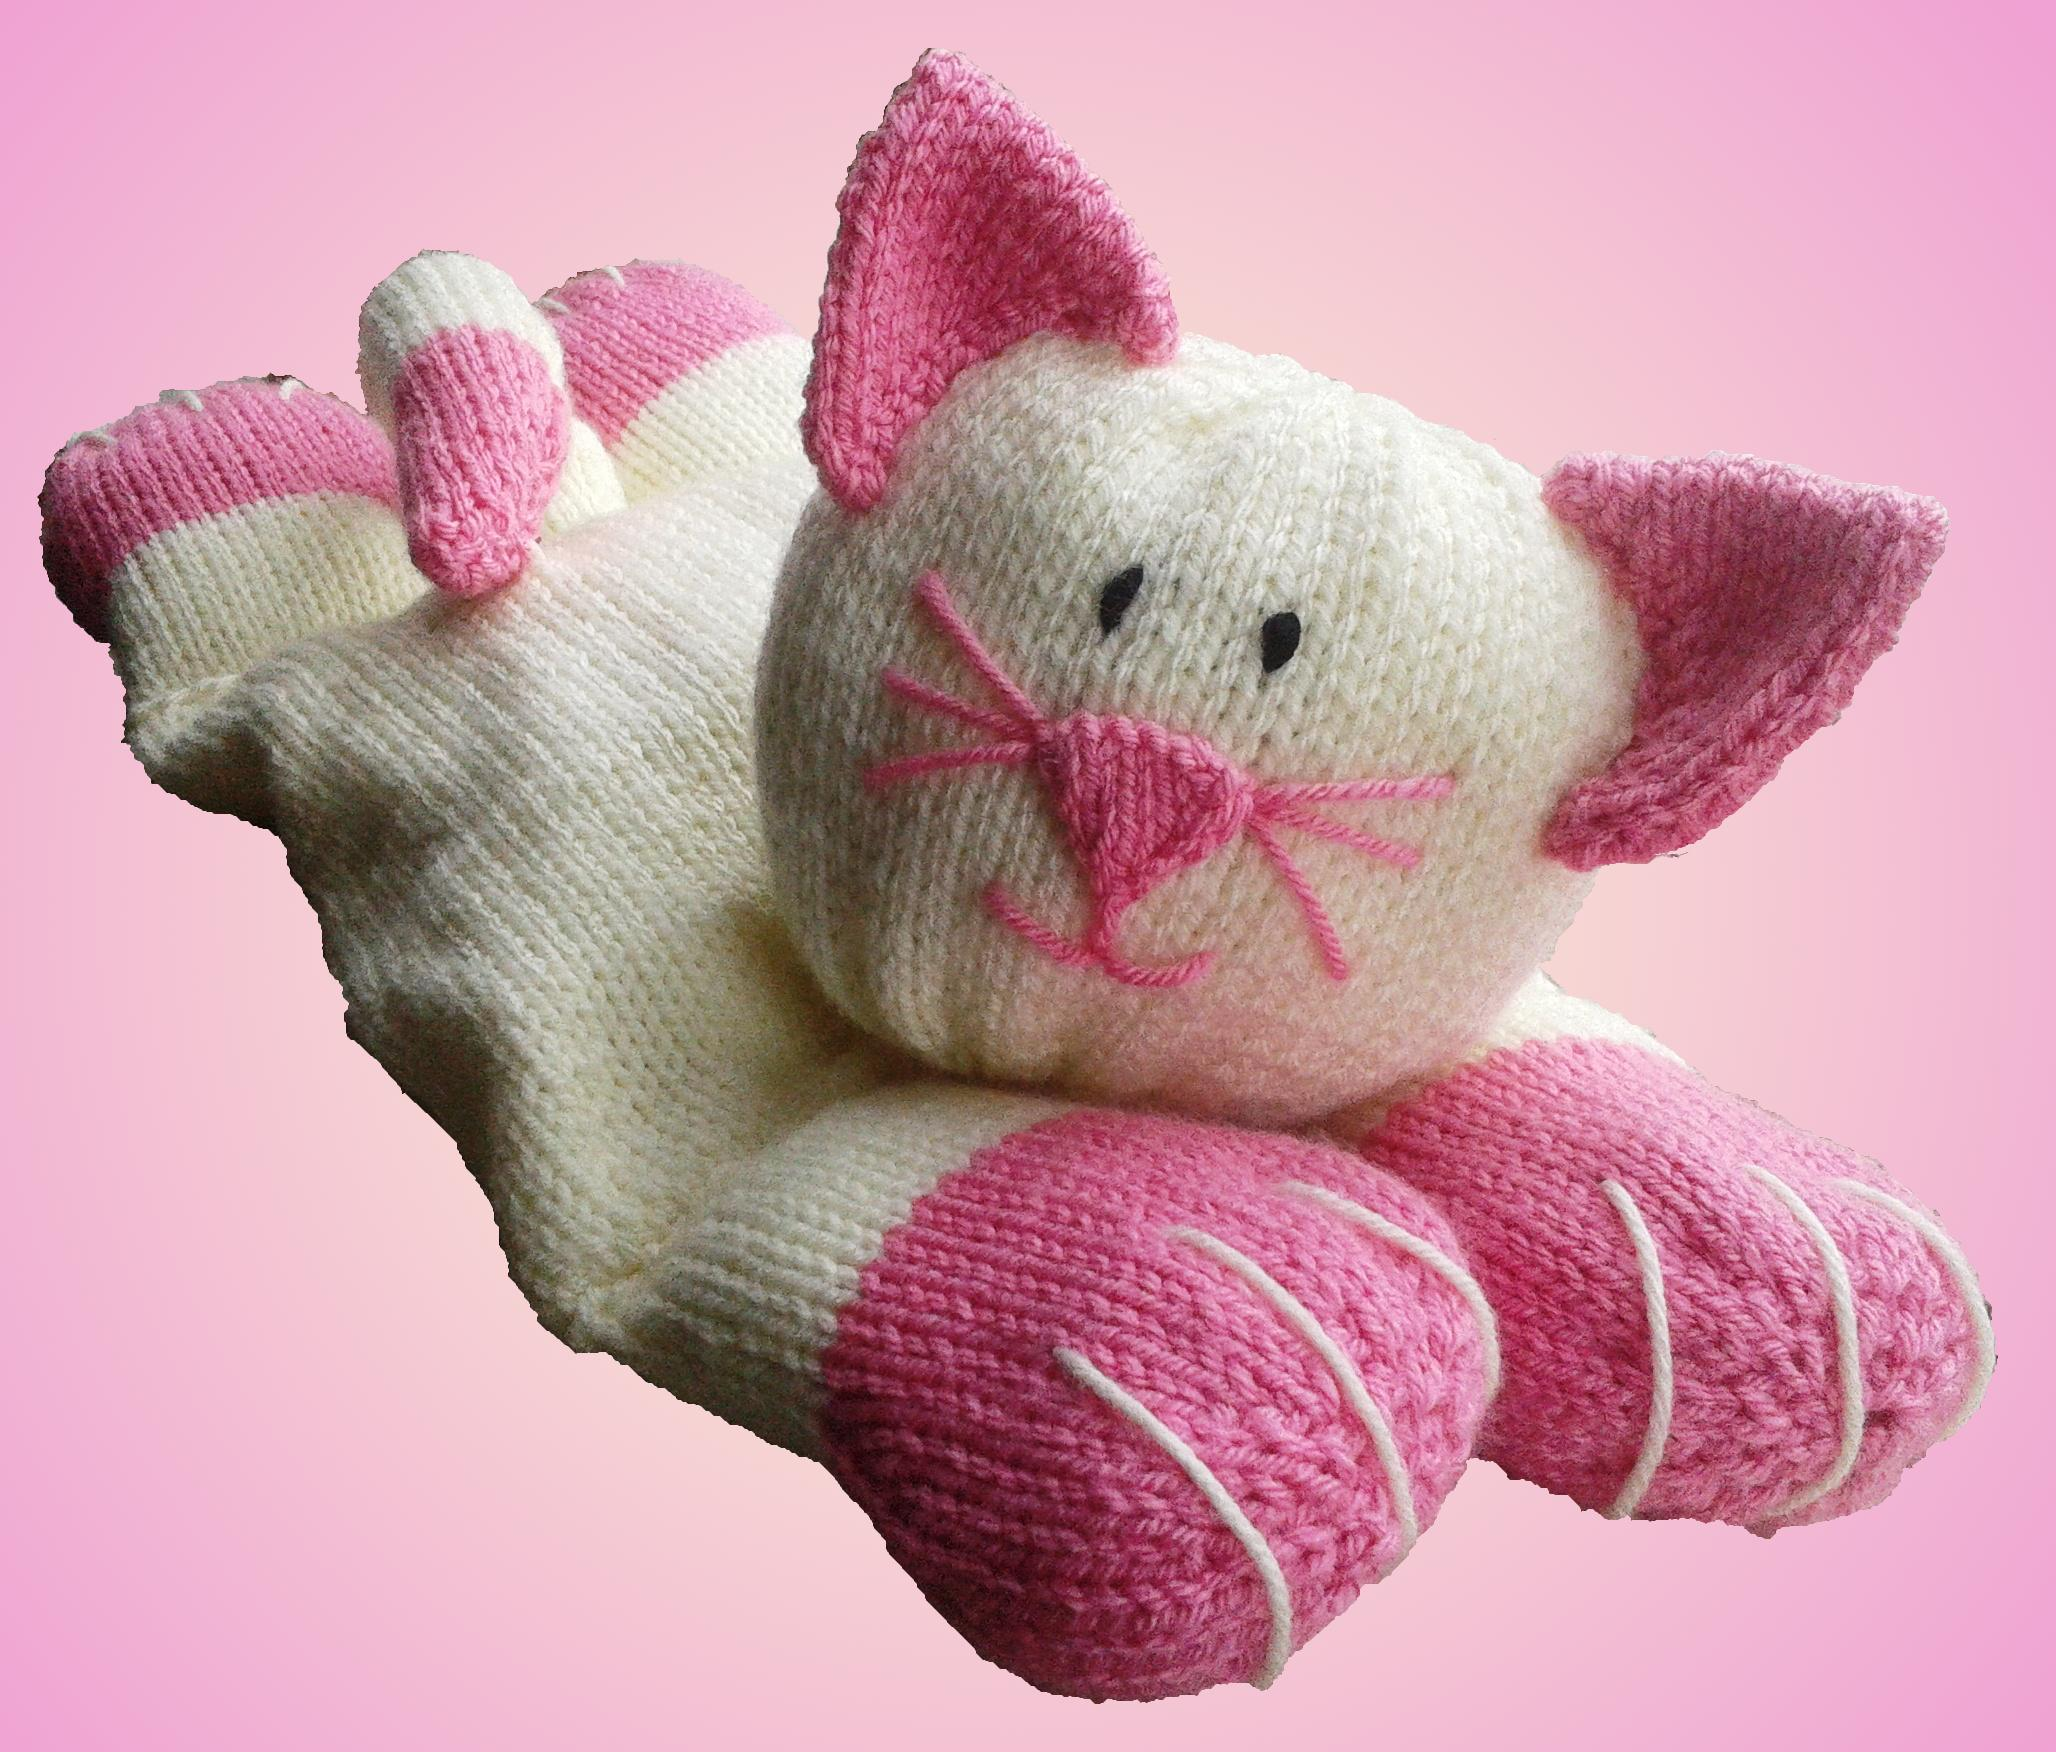 The Cat's Pyjamas – Pyjama Case Knitting Pattern